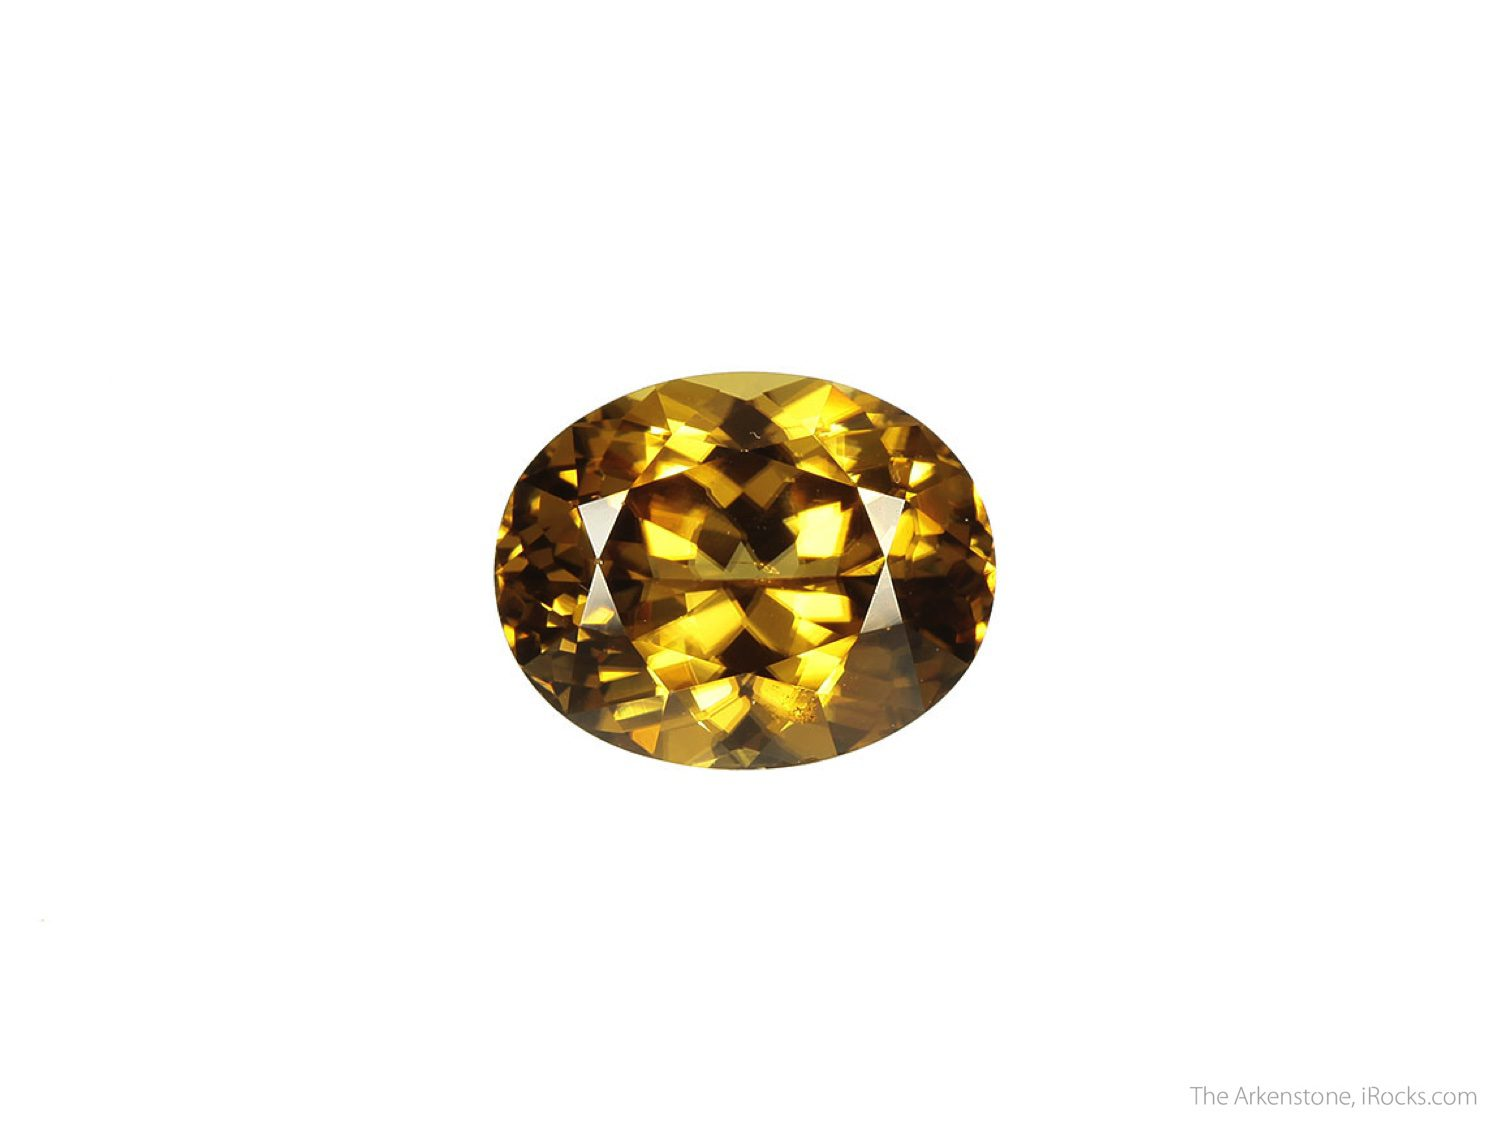 oval brilliant-cut zircon - Sri Lanka